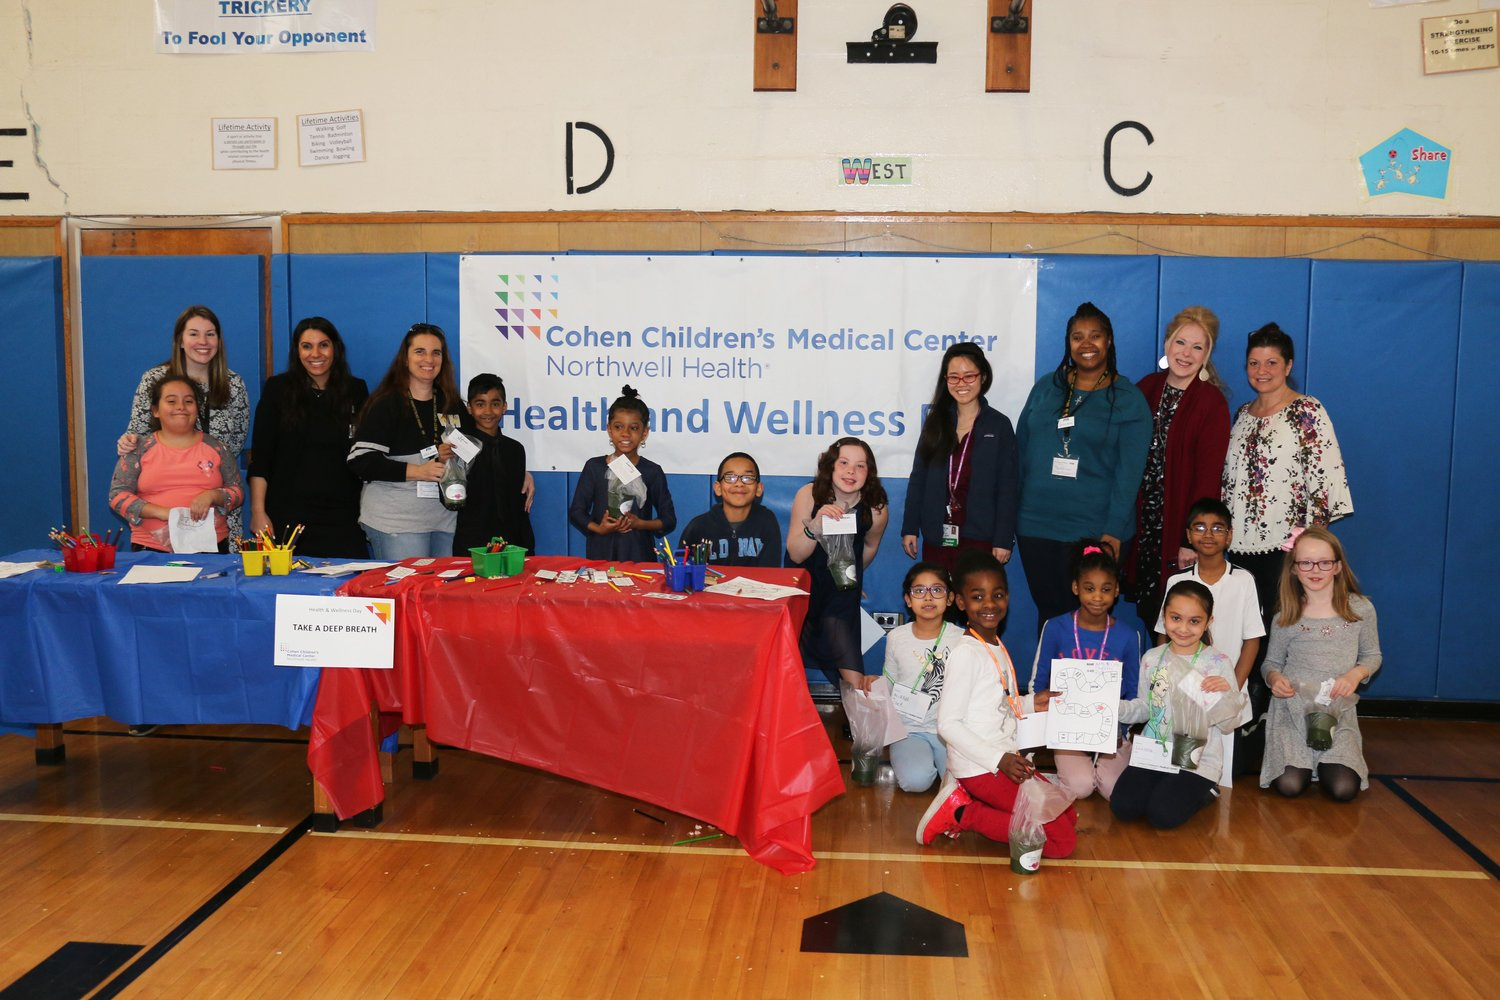 Representatives of Northwell Health Cohen Children's Medical Center visited Cornwell Avenue for a Health and Wellness Day Program on April 5.